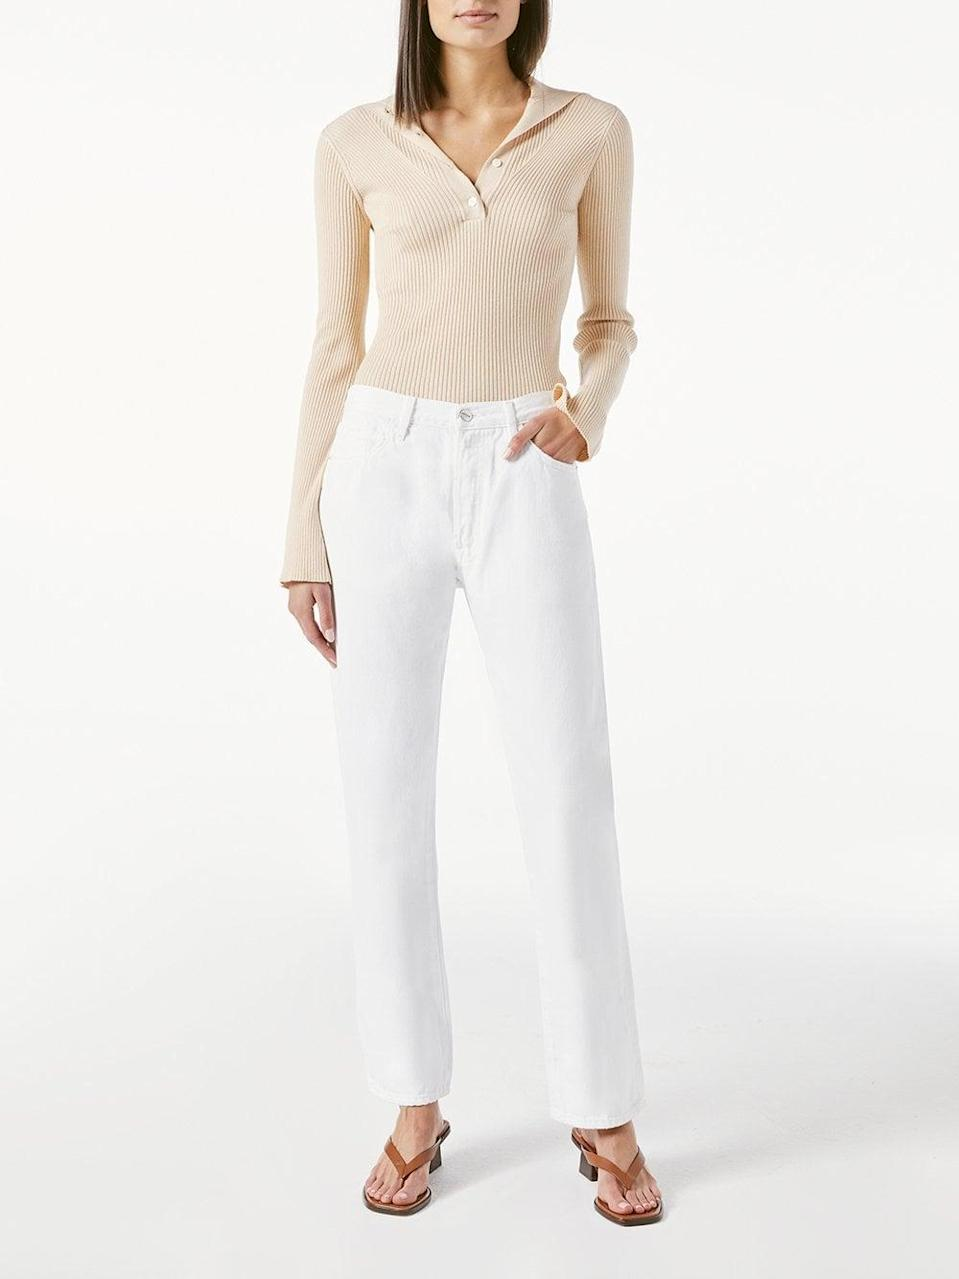 """<p>""""As a denim company, Frame is doing its part to reduce water consumption and the brand's environmental impact through its processes. The <span>Le Slouch Rumpled Blanc Grind Jeans</span> ($248) in particular are sustainable and made with recycled cotton. The slouchy fit means these will be lived in and cool forever when it comes to my wardrobe, full of movable, loose-fit jeans that look great with crop tops and slides in the spring and summer."""" - SW</p>"""